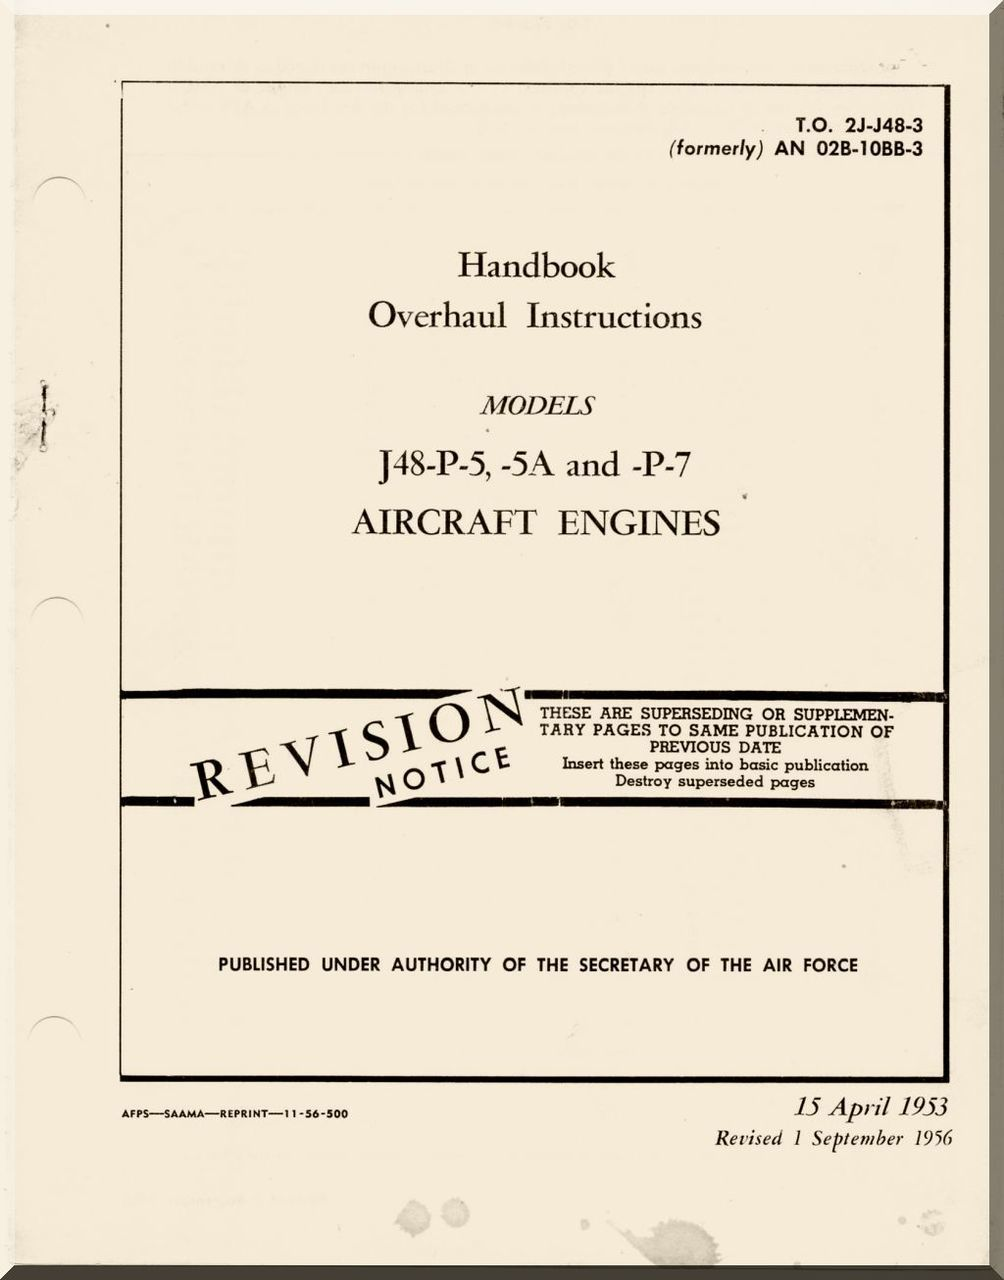 Pratt & Whitney J-48 P-5,-5A and -P-7 Aircraft Engine Overhaul Instructions  Manual 02B-10BB-3 - 1953 - Aircraft Reports - Aircraft Manuals - Aircraft  ...